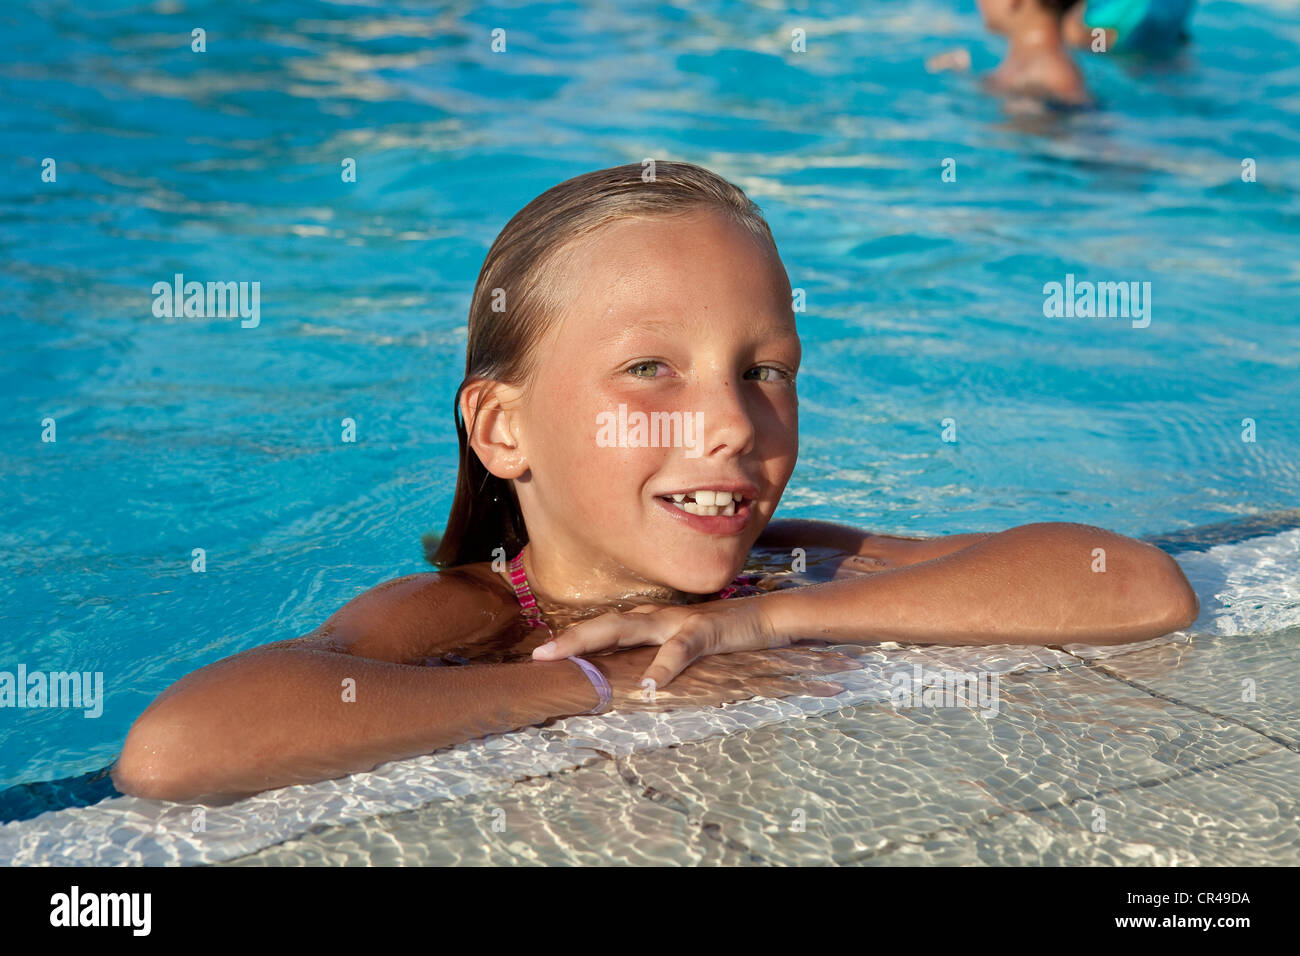 France, Corse du Sud, young girl at the swimming pool - Stock Image